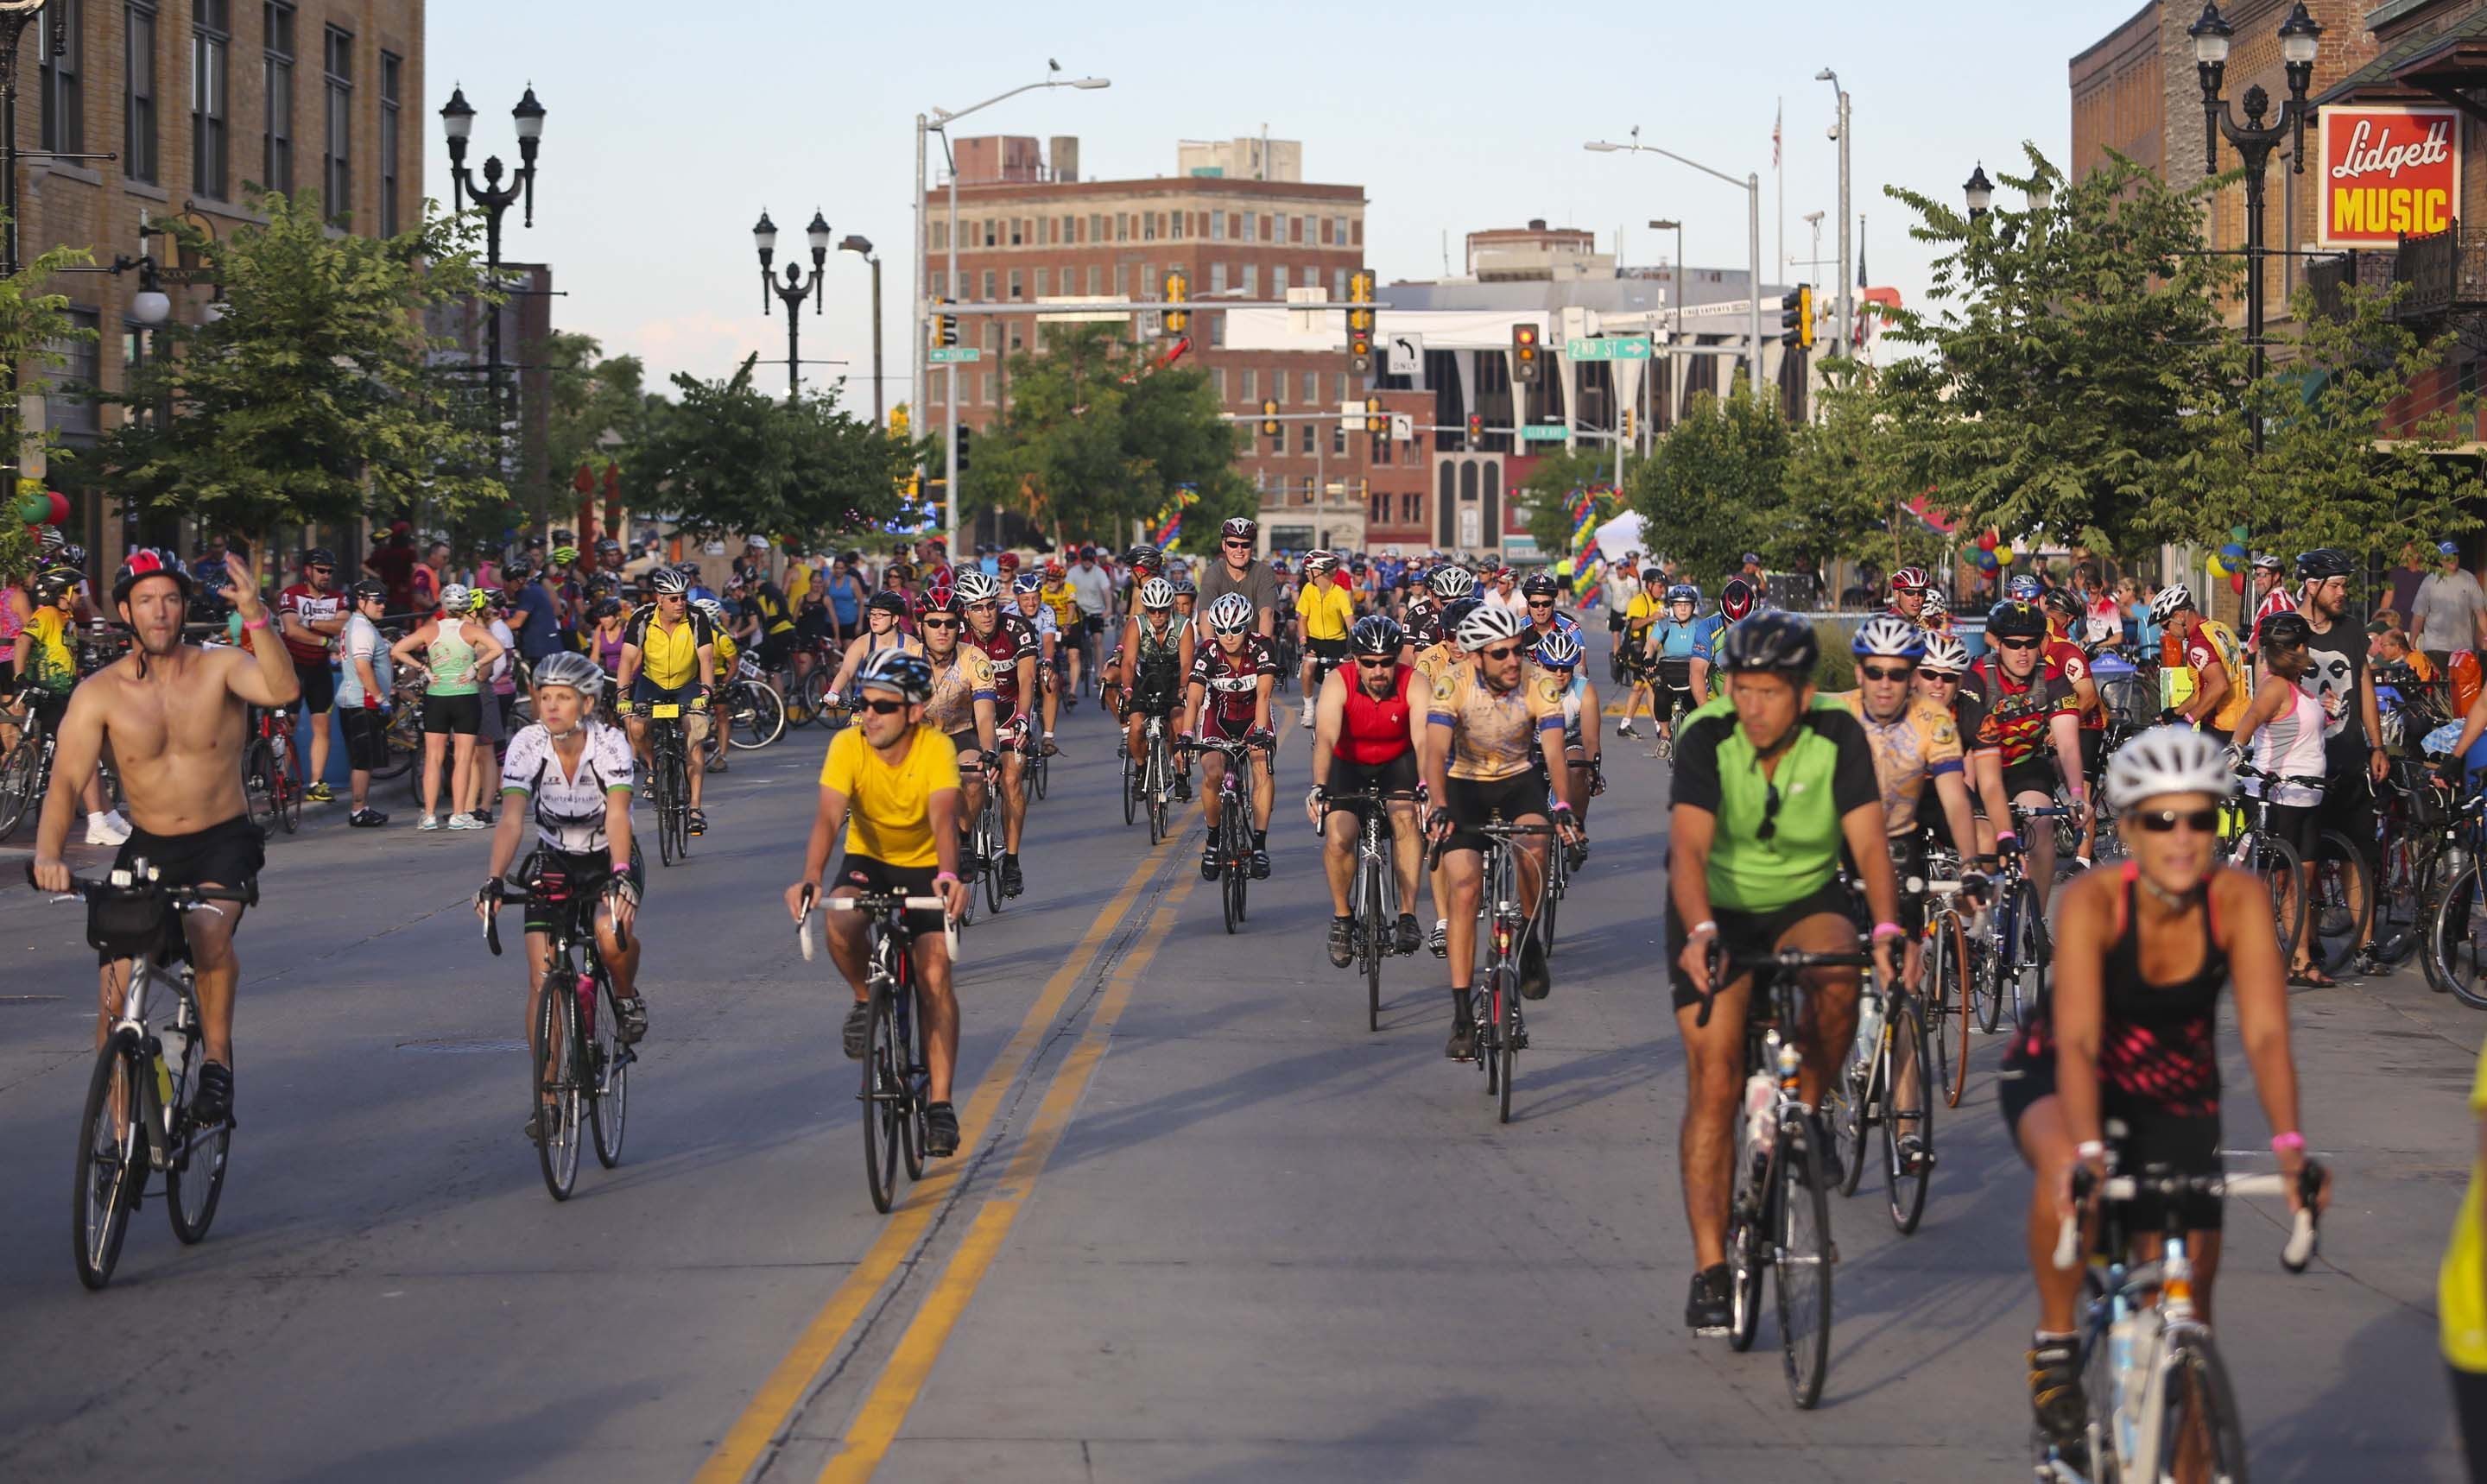 Ragbrai 2013 Des Moines Loved Riding Through Downtown And The